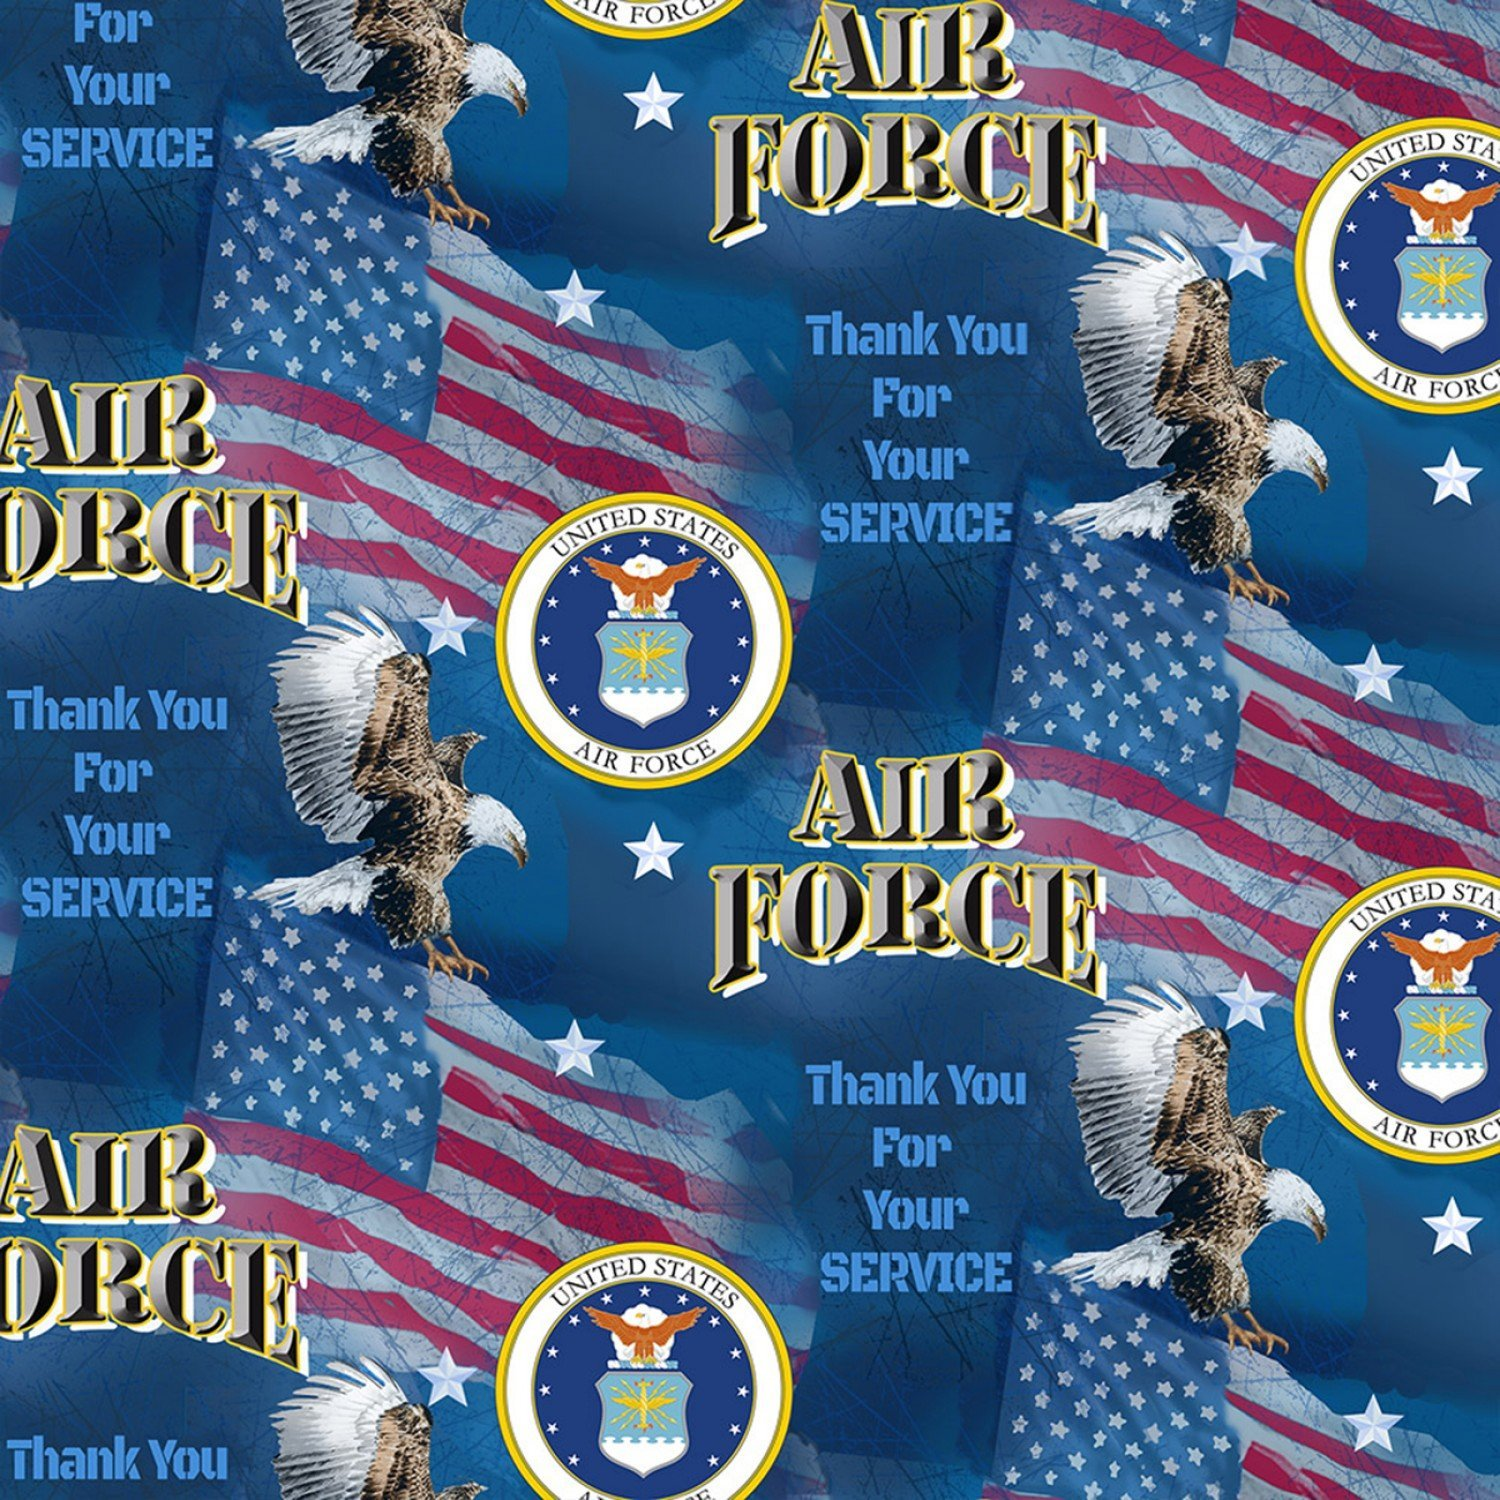 Military Prints - Air Force Flags